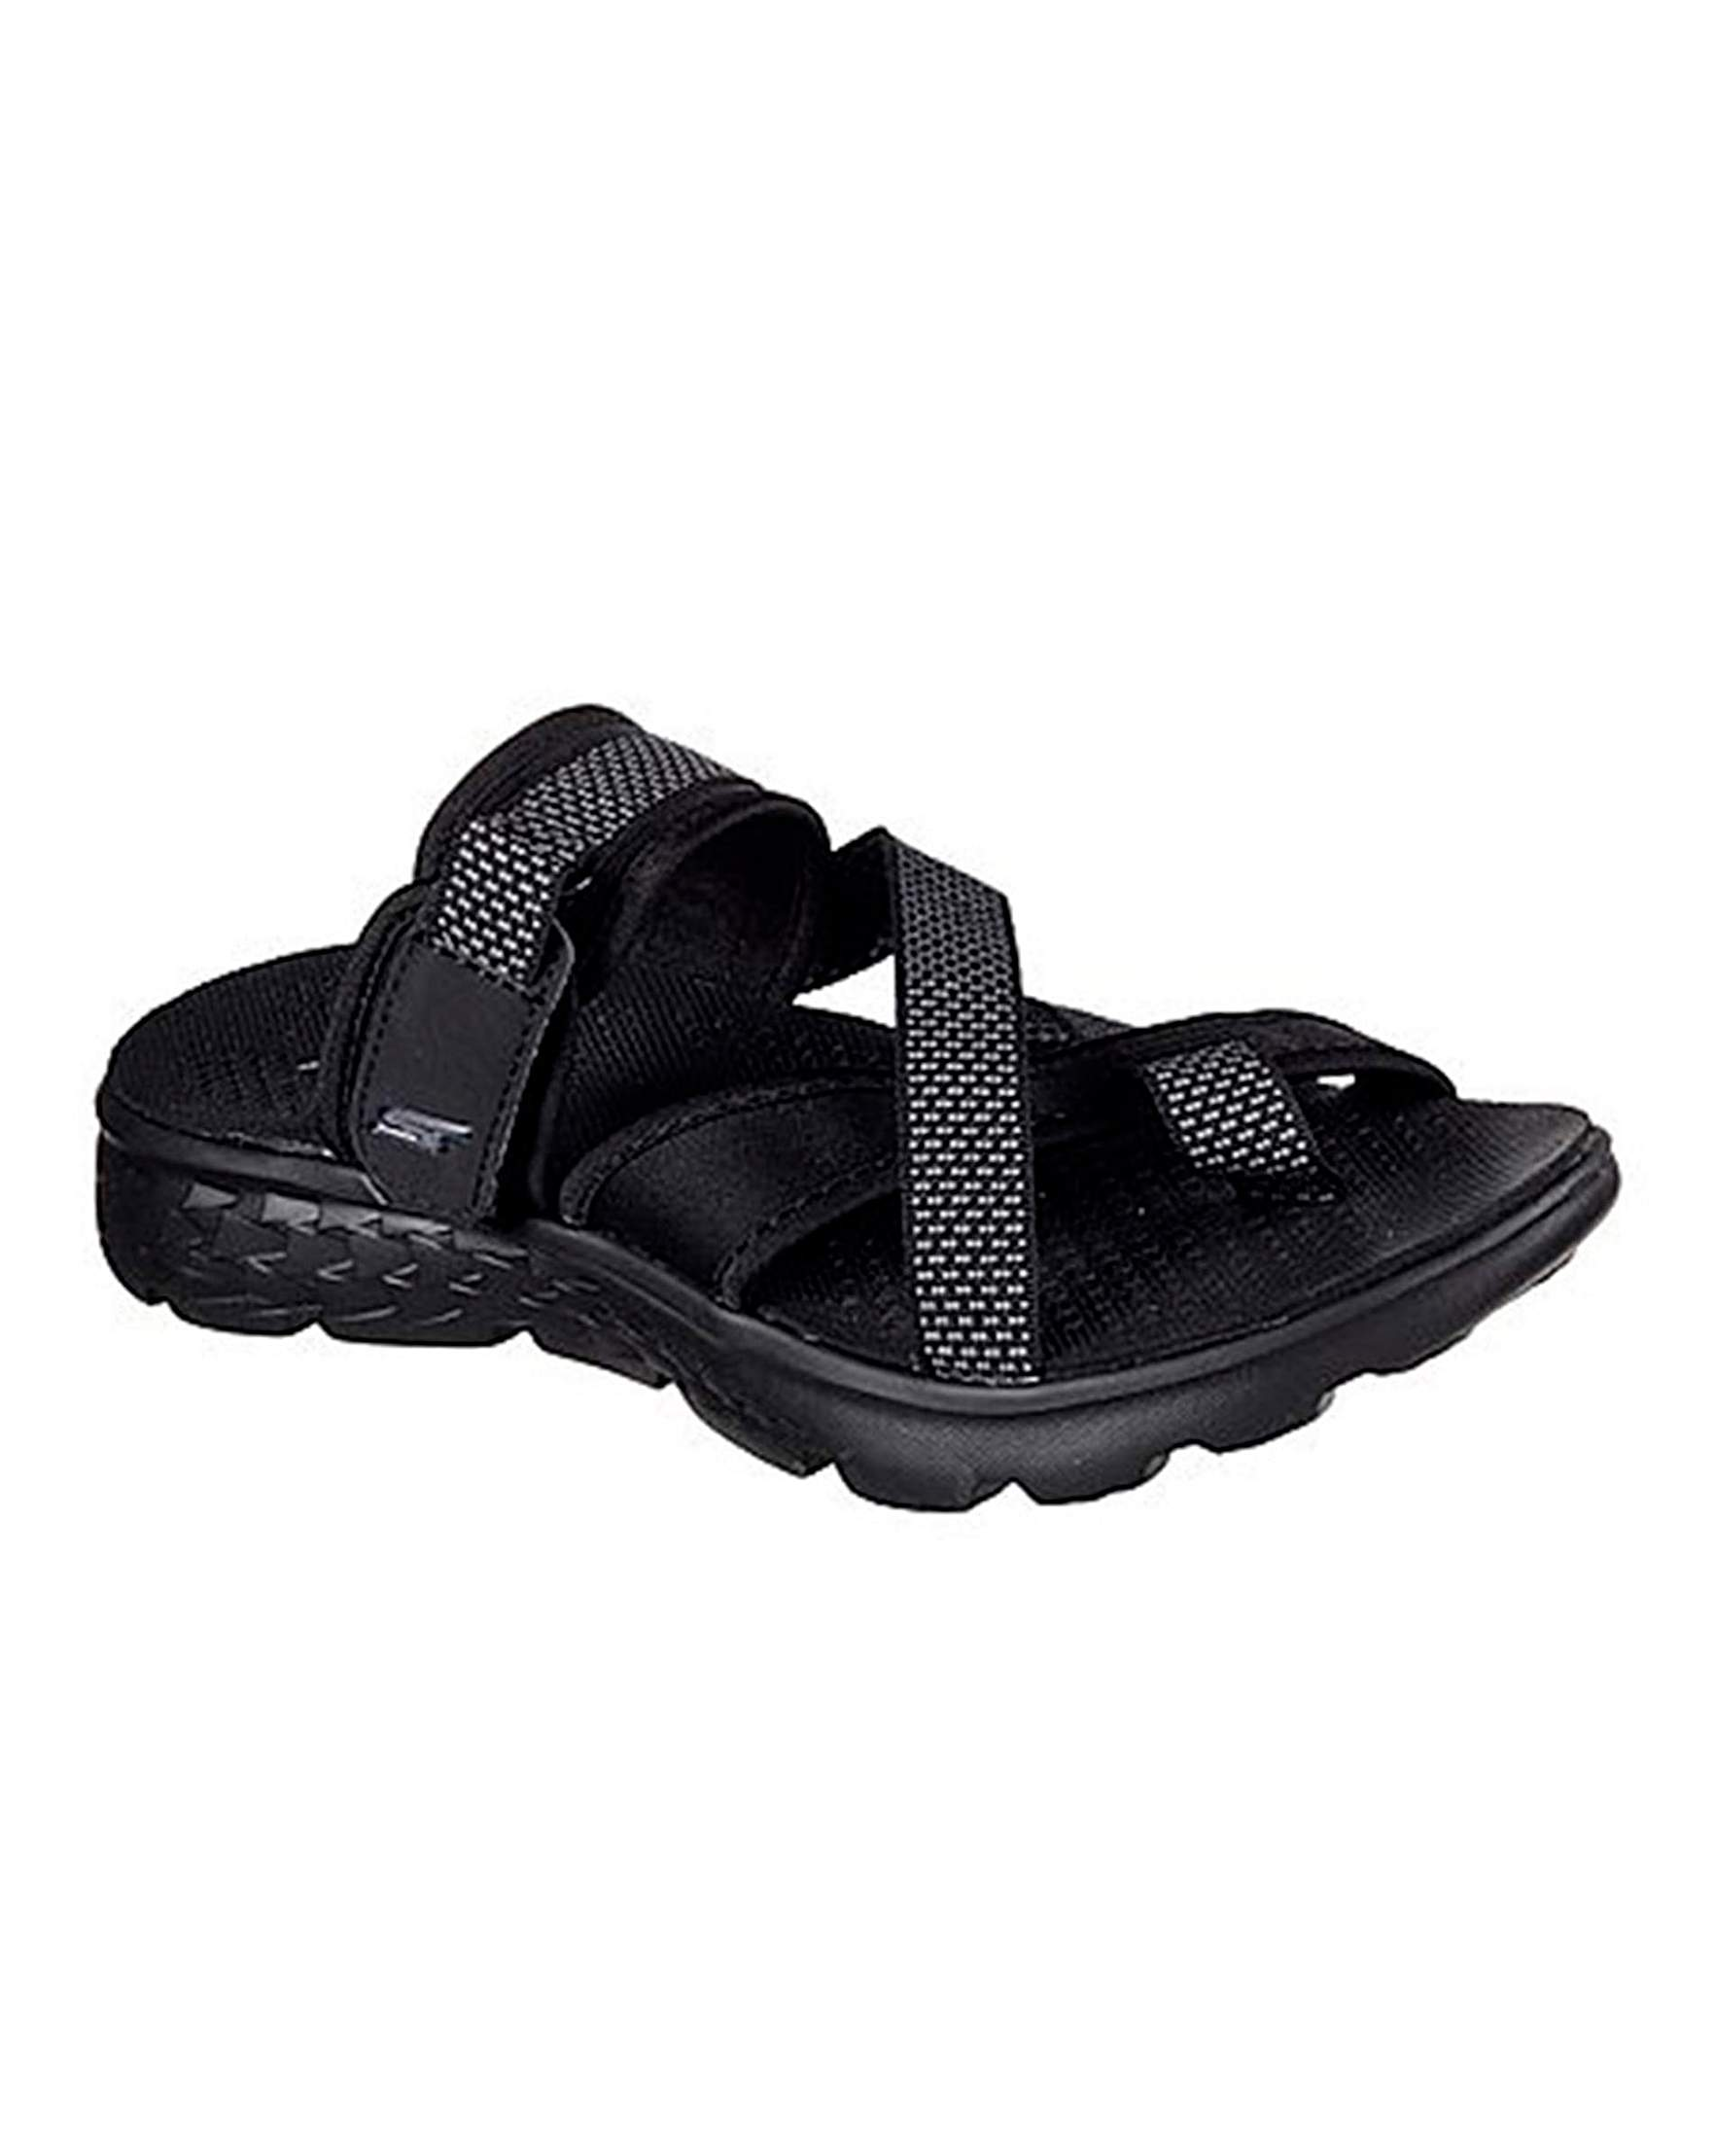 6a117c151409 Skechers On the Go 400 Discovery Sandals